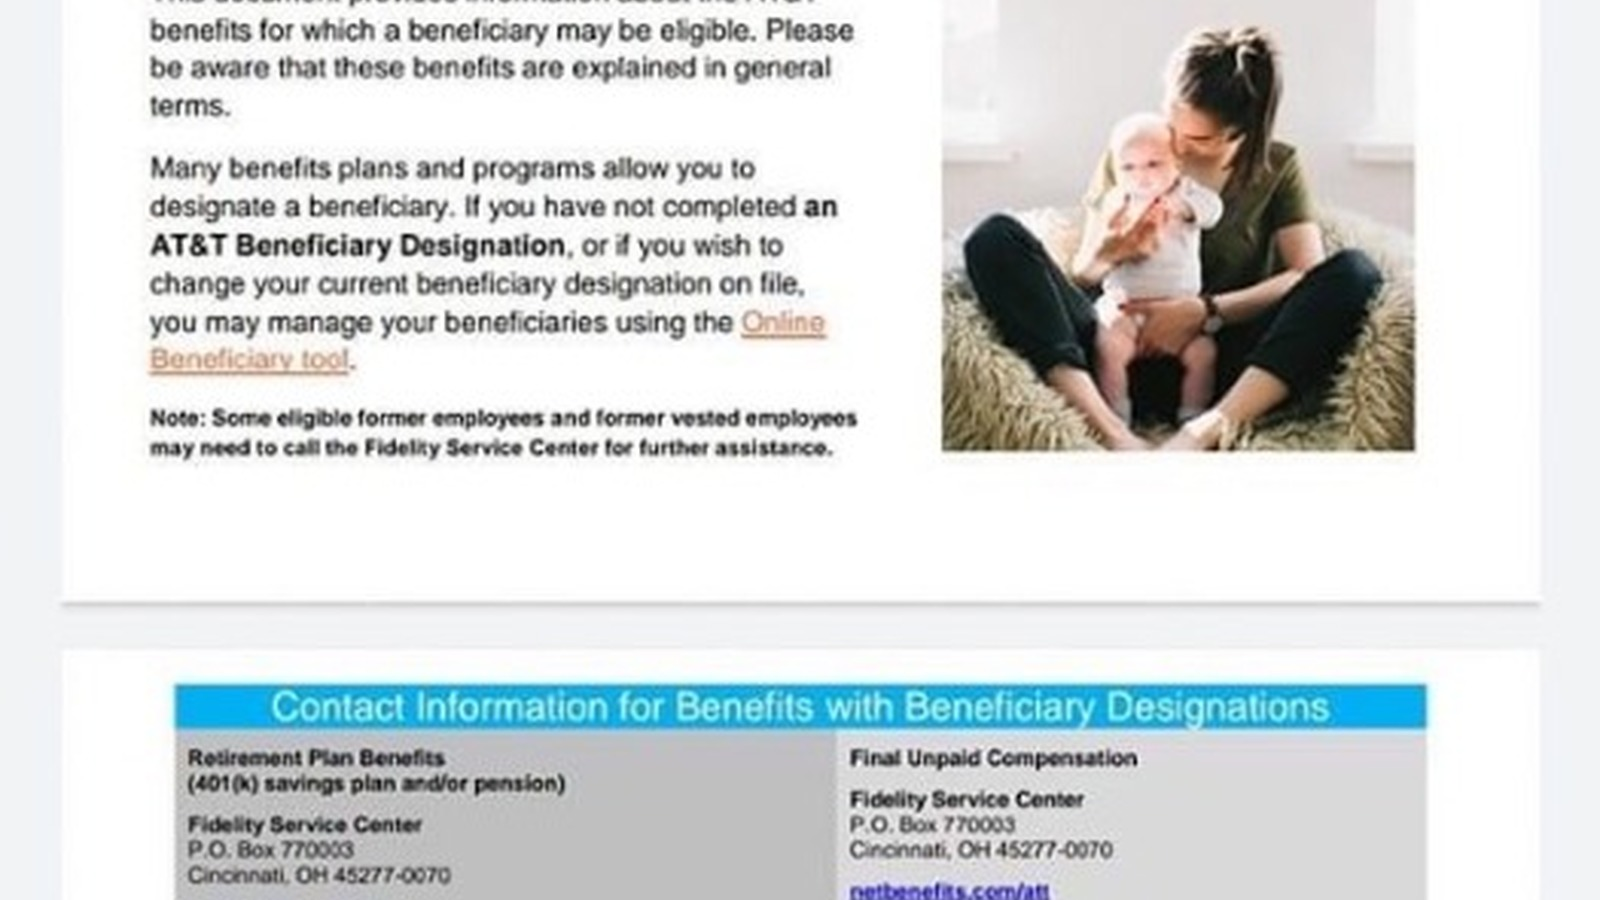 Image in support of: This document provides contact information about benefits for which a beneficiary may be eligible.